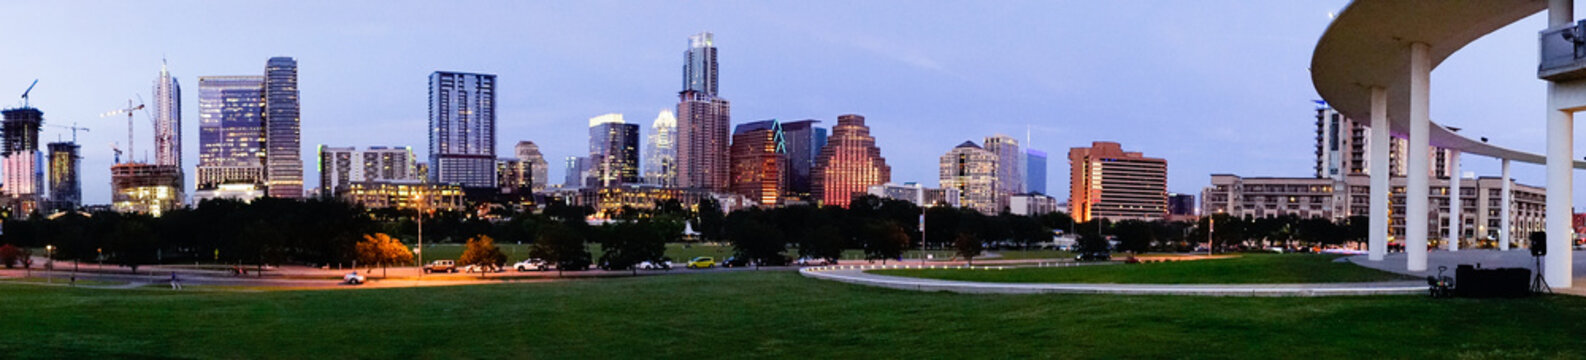 Austin Texas Downtown City Skyline Urban Architecture Panoramic